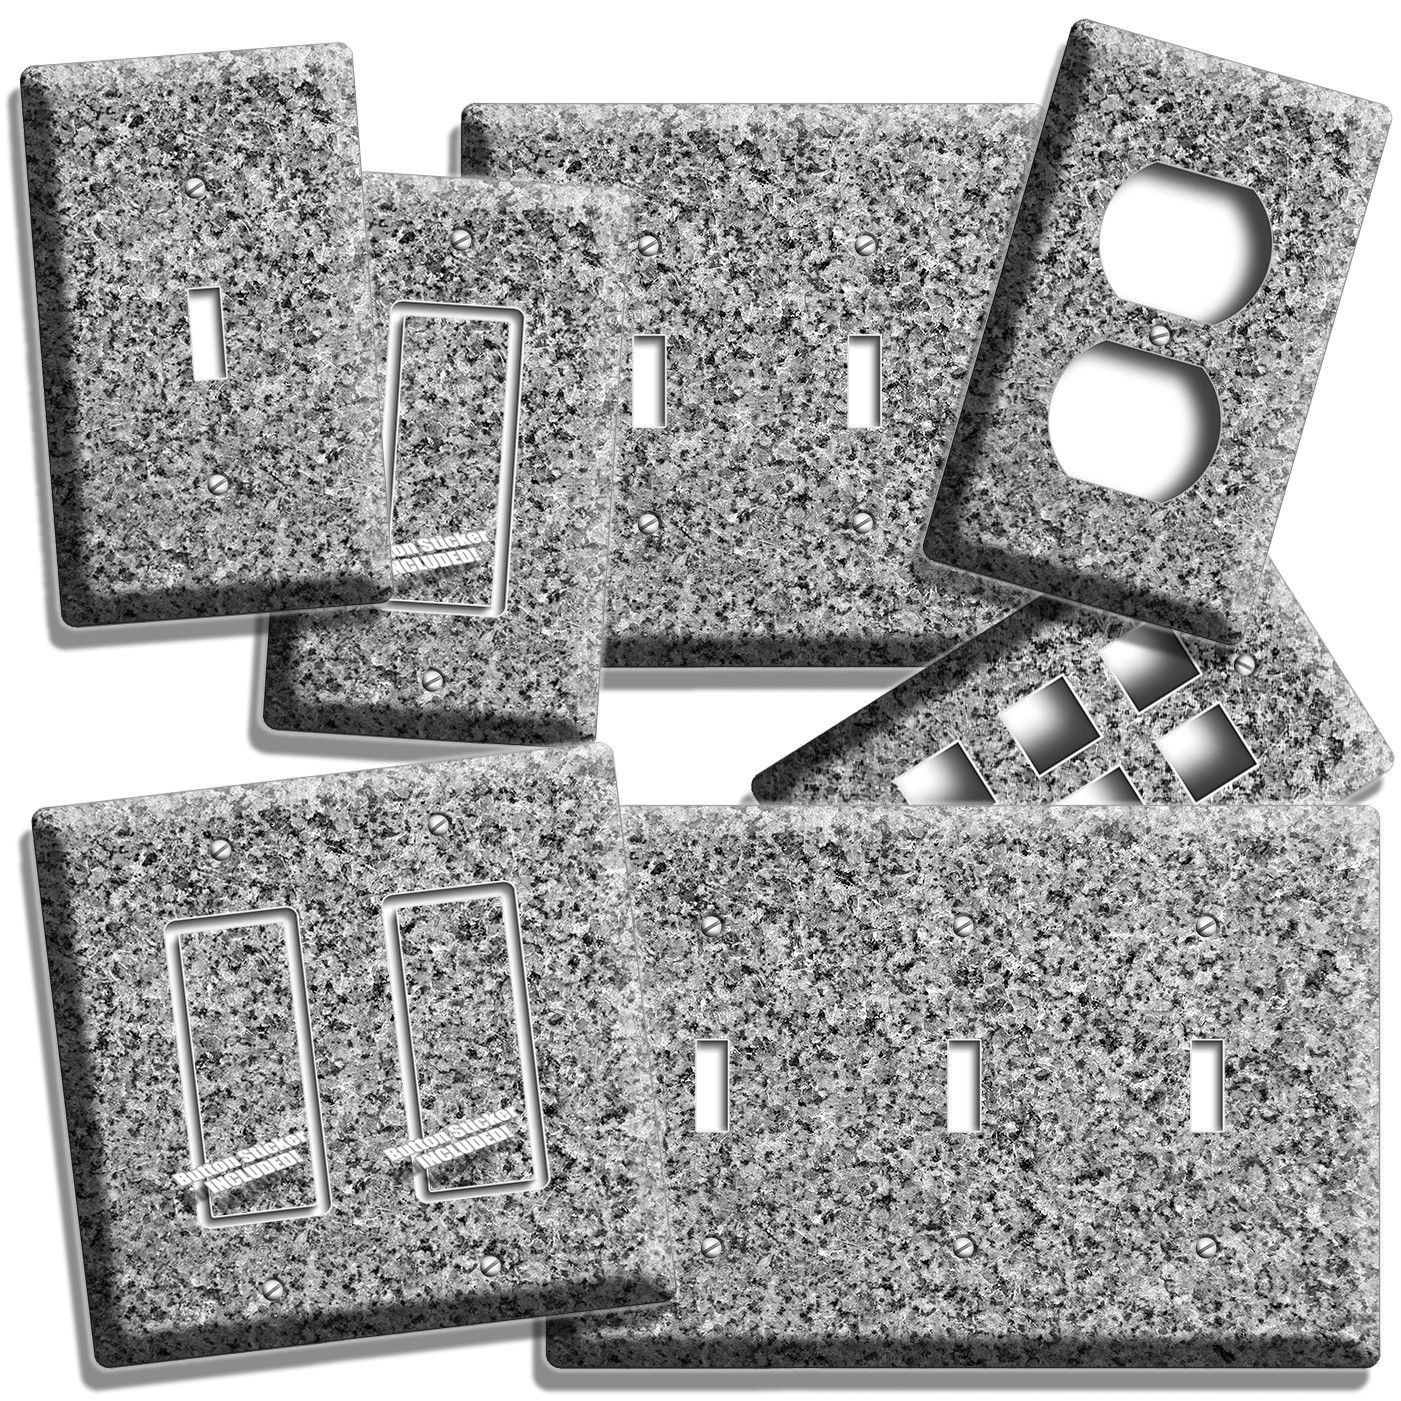 GRAY GRANITE LOOK LIGHT SWITCH OUTLET WALL PLATE ROOM ART KITCHEN BATHROOM DECOR - $10.99 - $22.99